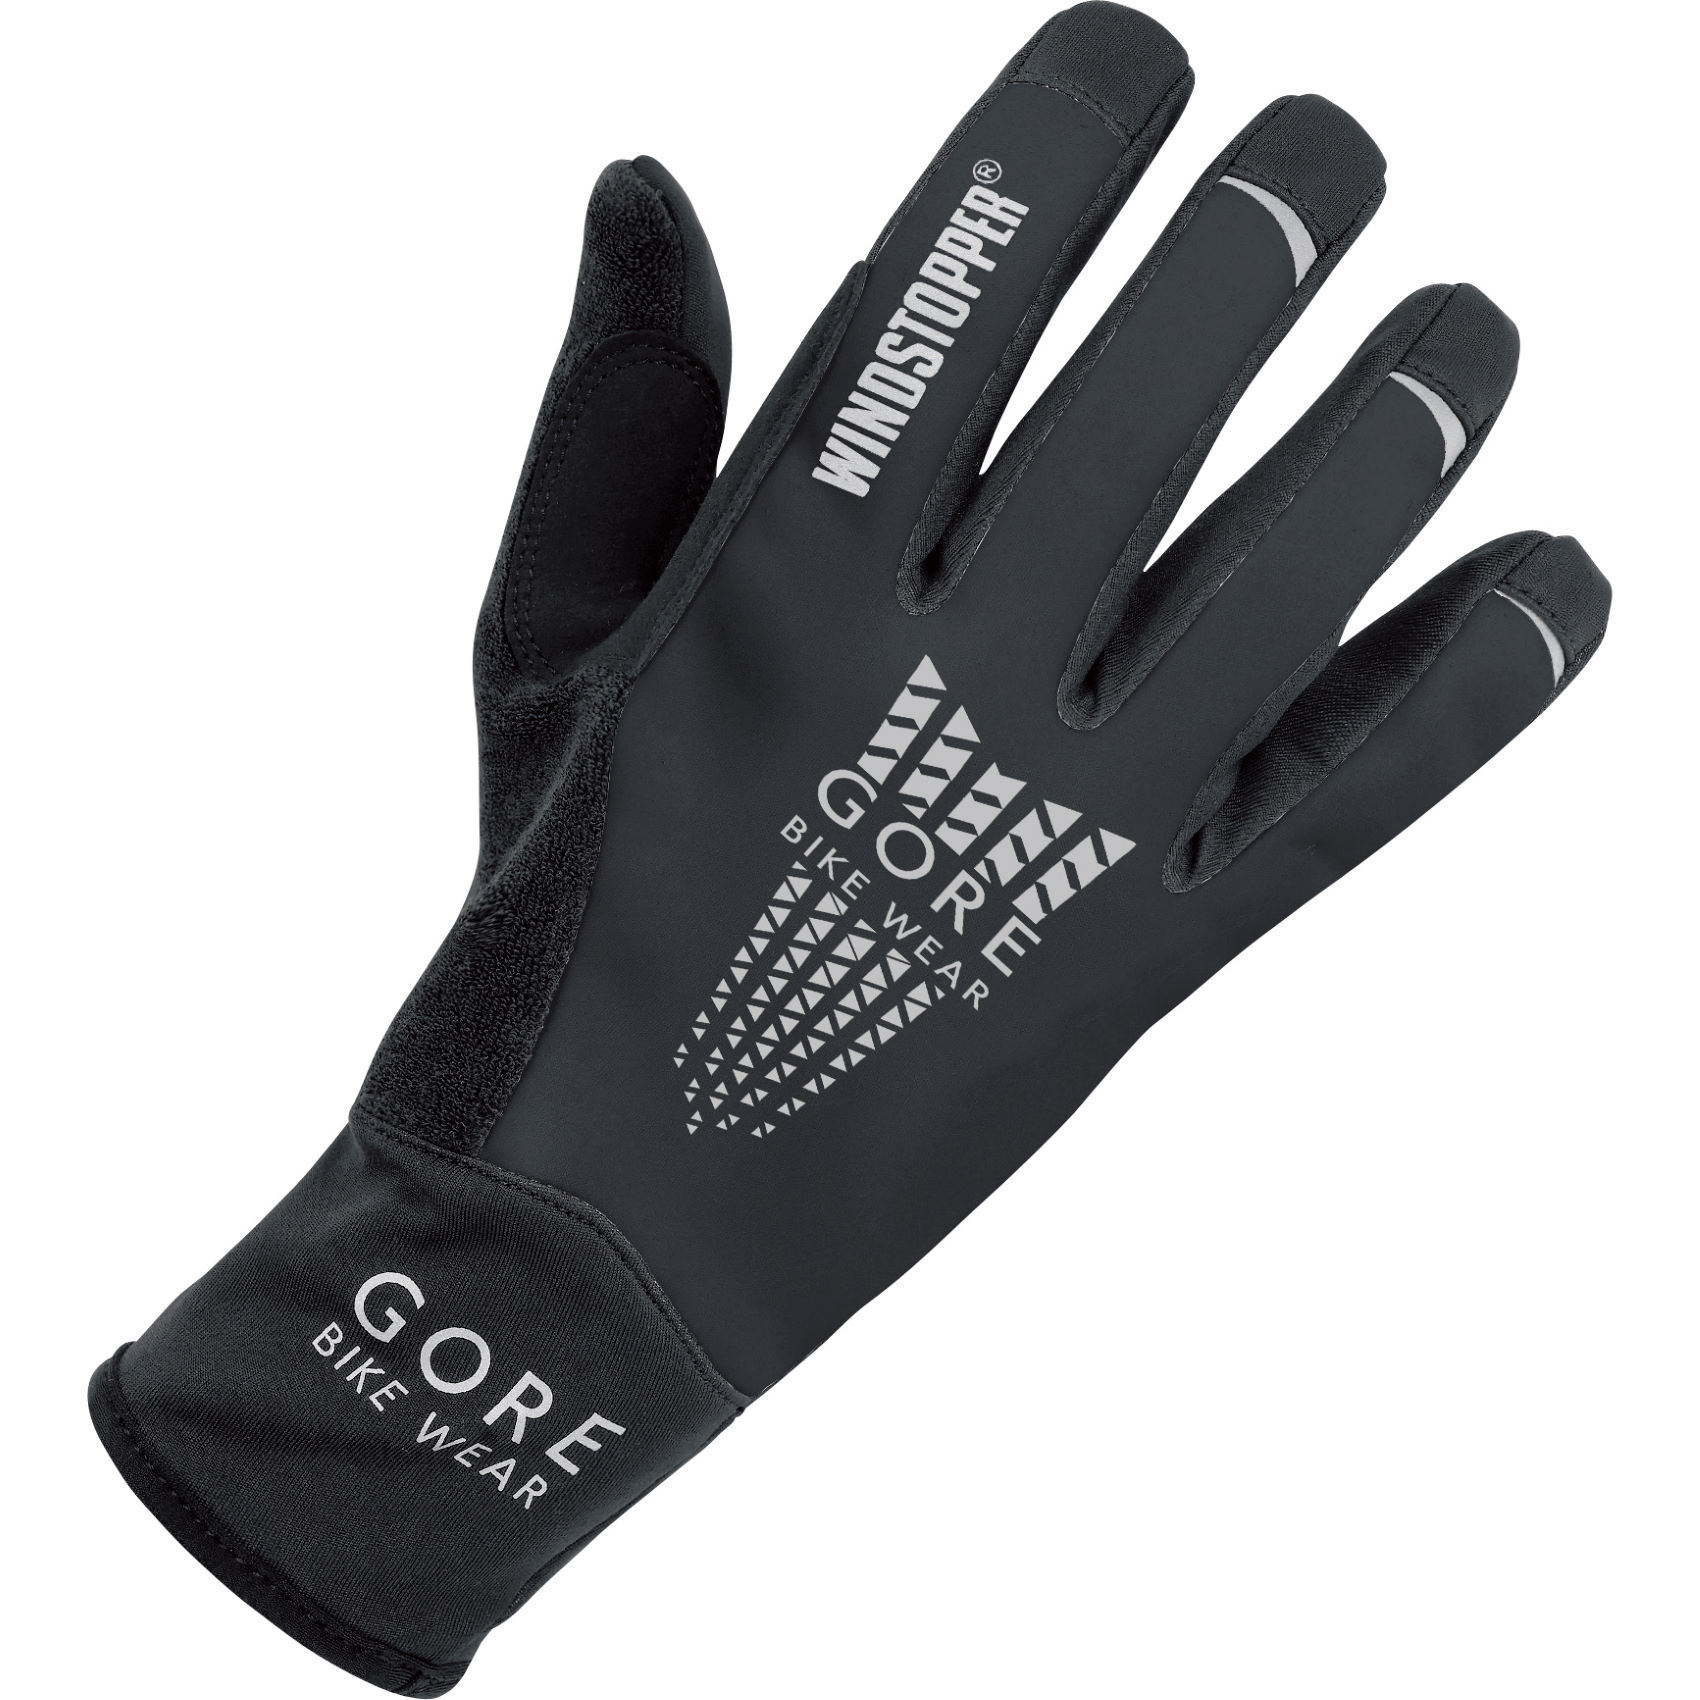 Men's Gloves and Mittens. When that first cold snap hits, or if you're preparing for a sports event or an outdoor adventure, you want to be prepared with men's gloves and mittens that fit well and truly keep your hands and fingers warm.